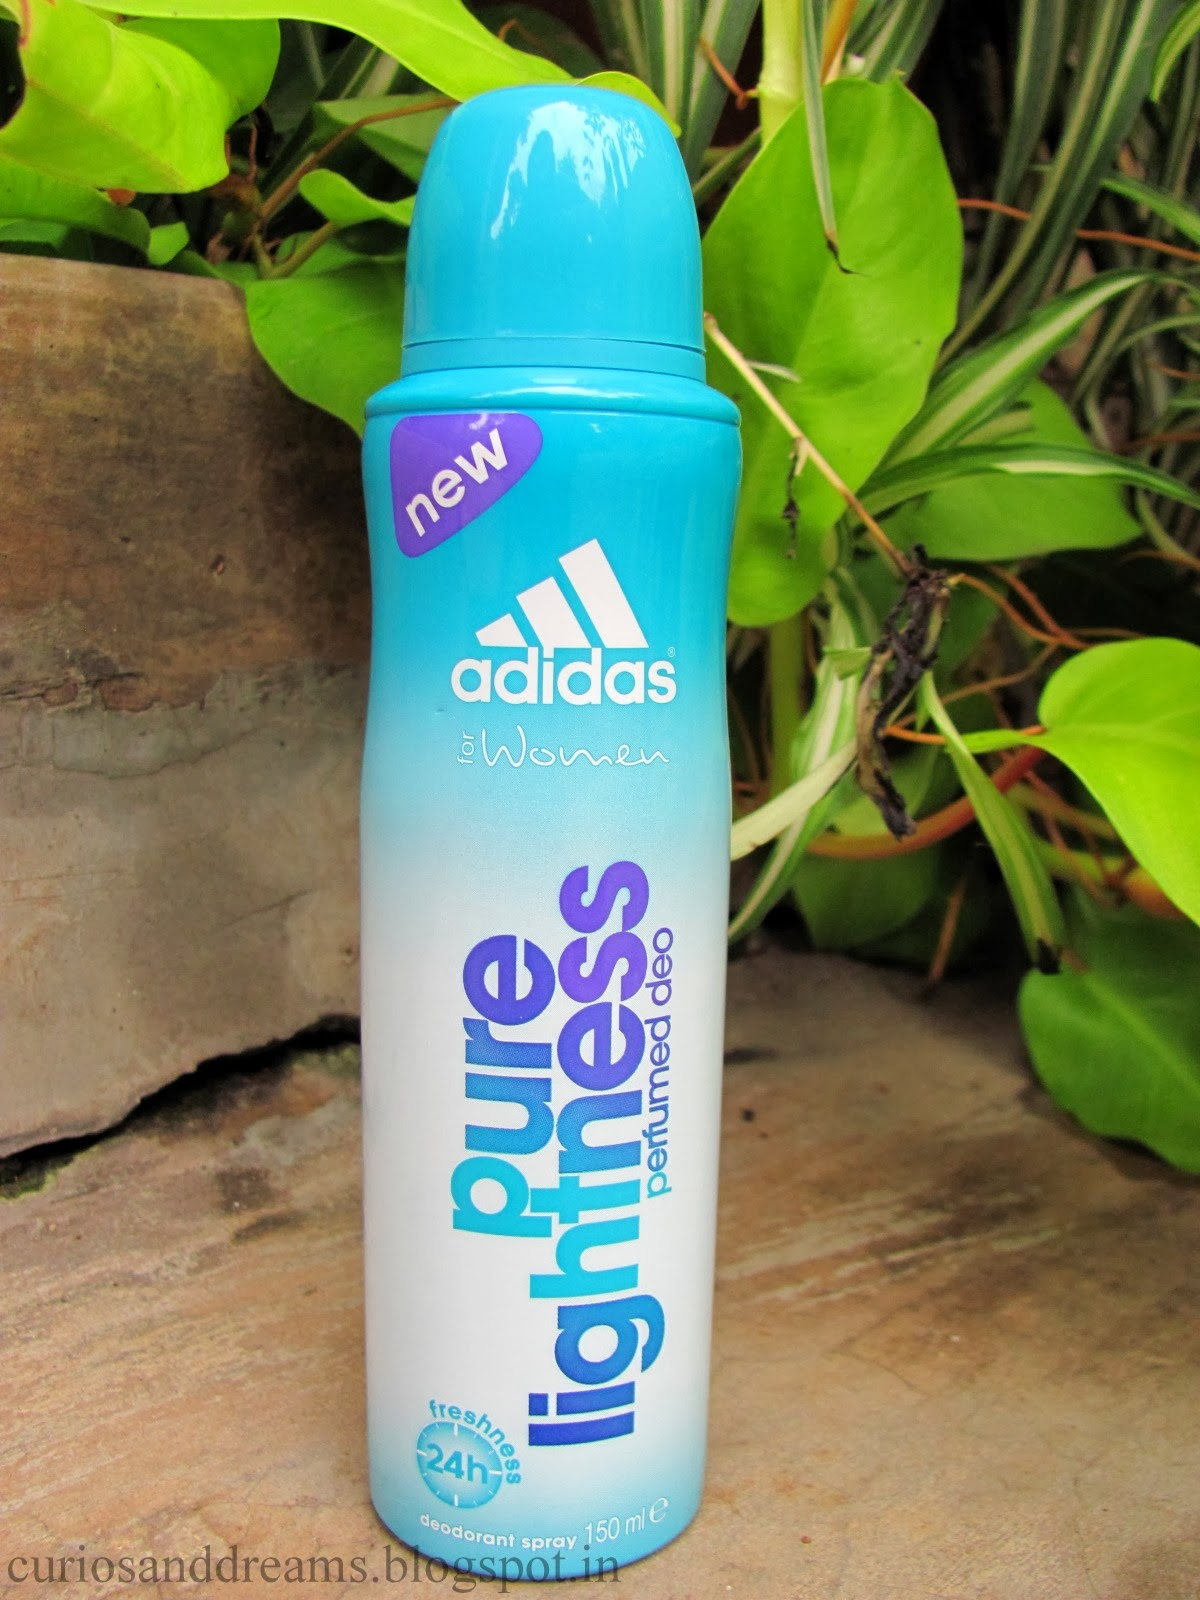 Adidas Pure Lightness Deo Review